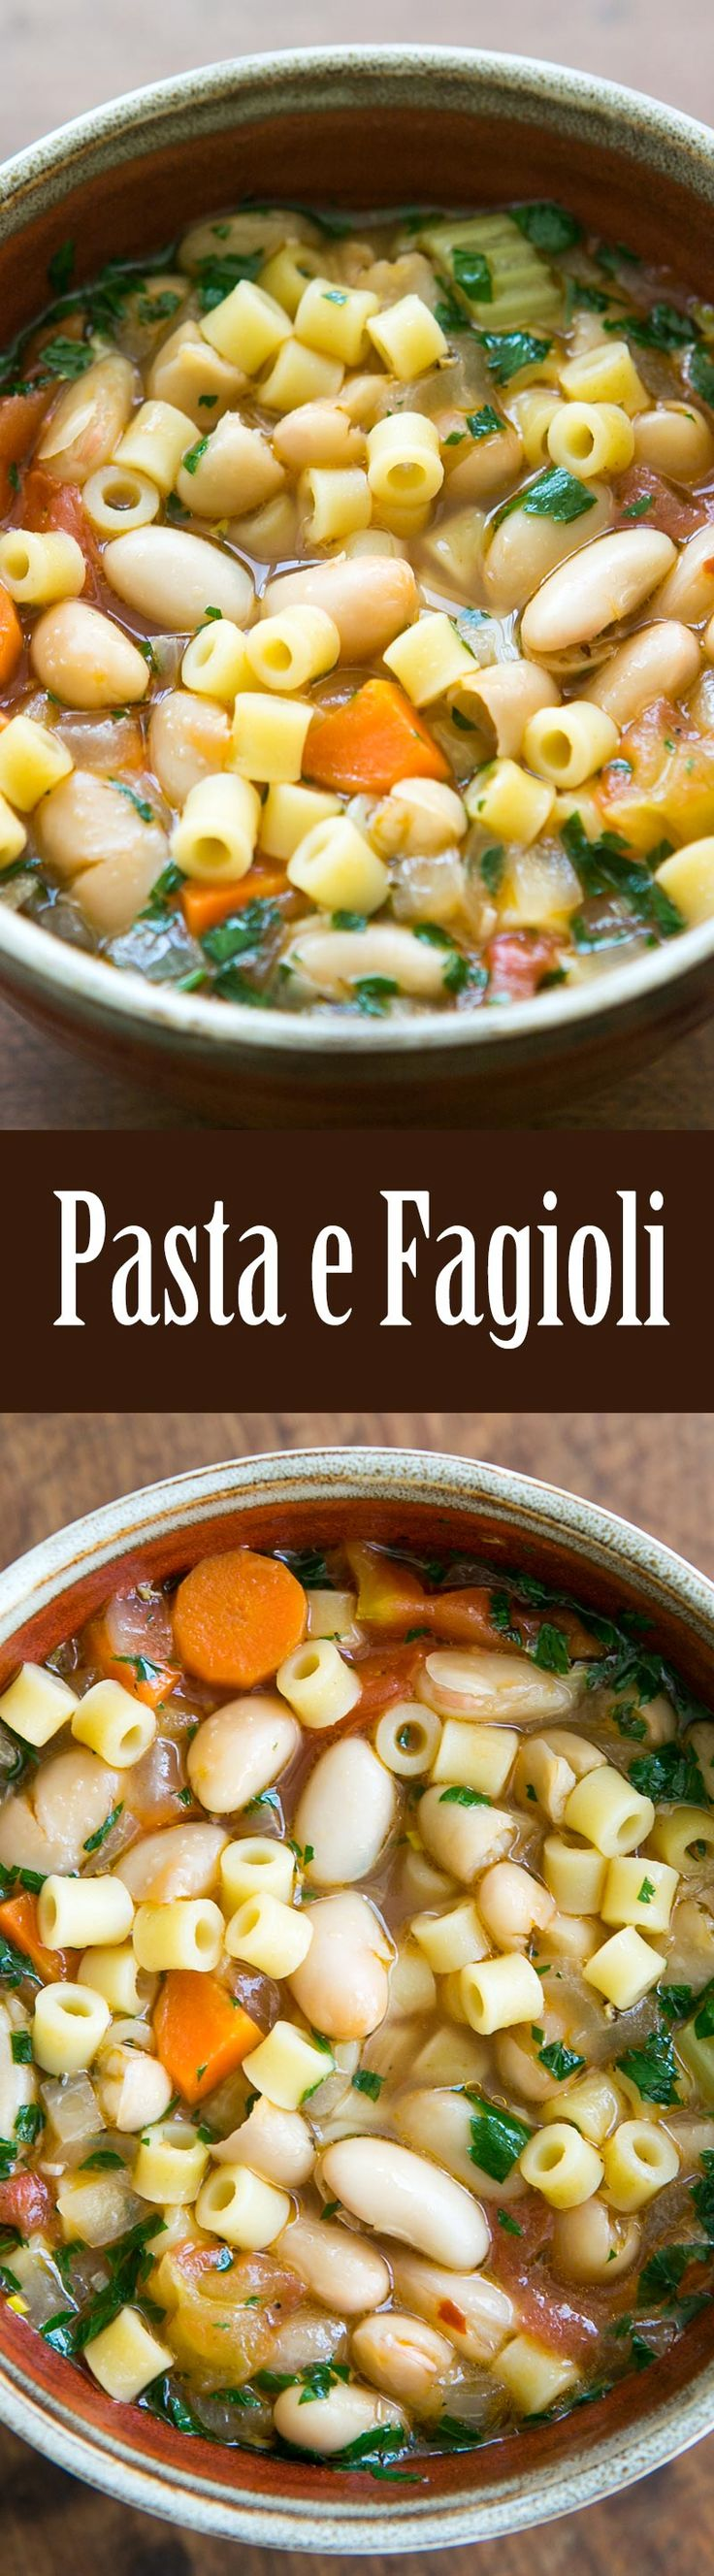 Pasta e Fagioli - A classic Italian dish of beans and short pasta with tomatoes and vegetables. So GOOD!